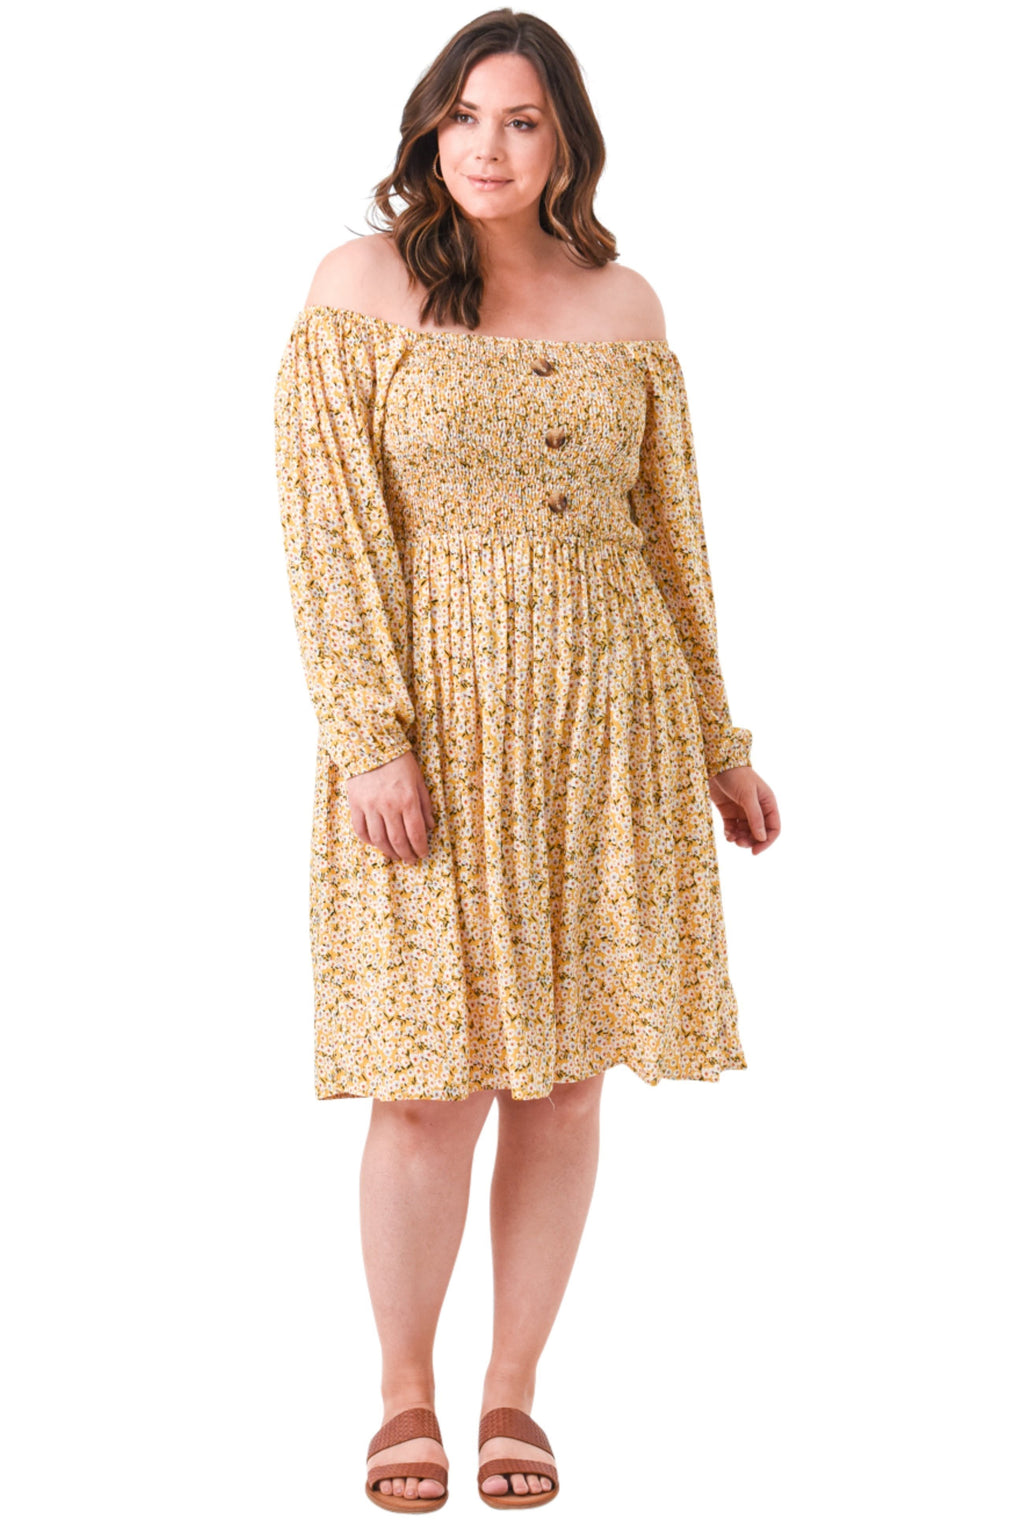 Cassie Dress - Curvy Clothes Australia - Afterpay Laybuy & Humm Online